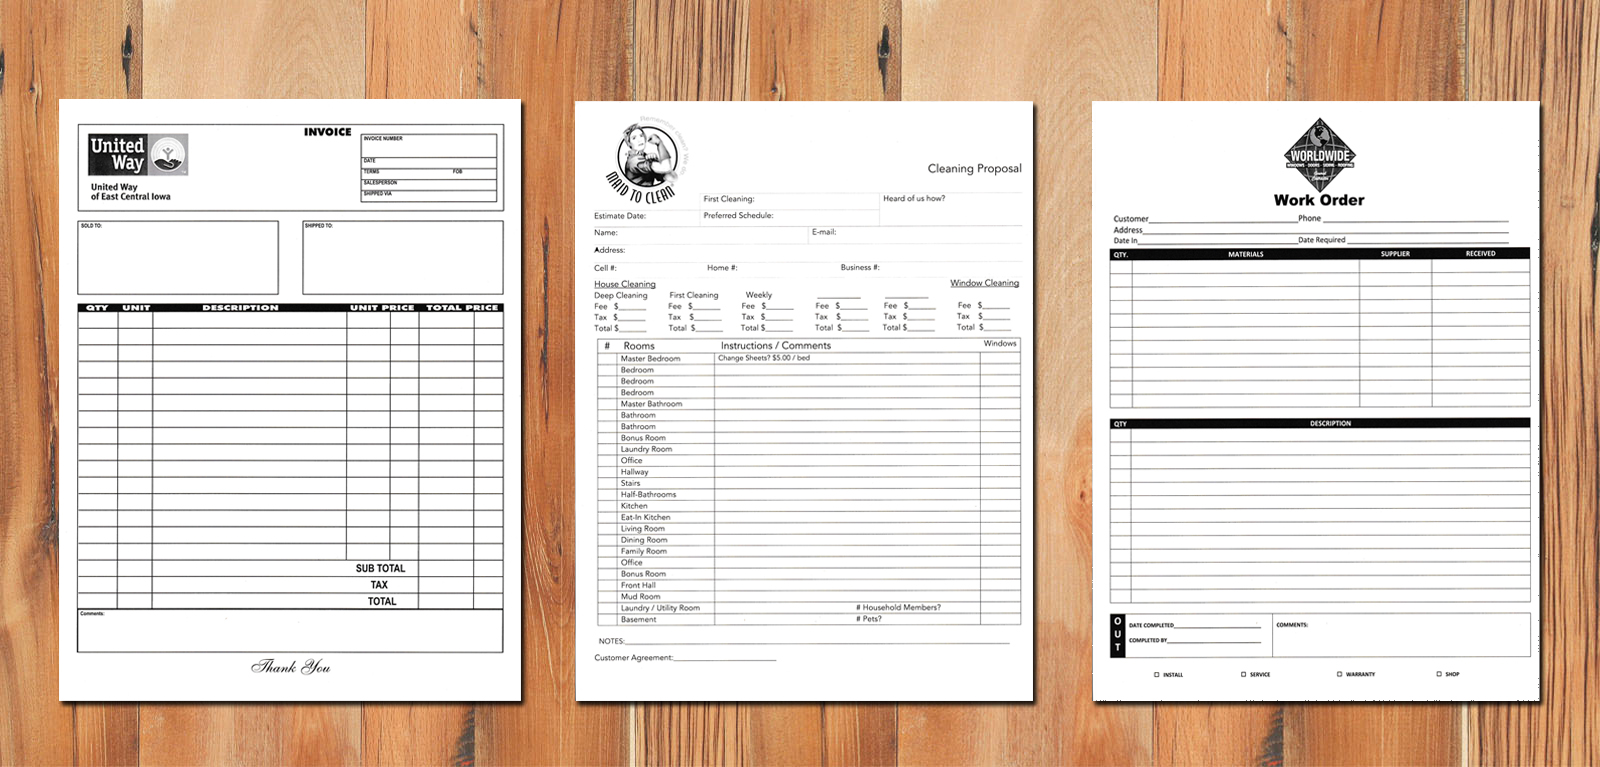 Custom Carbonless Forms Carbonlesscom - Custom carbon paper invoices